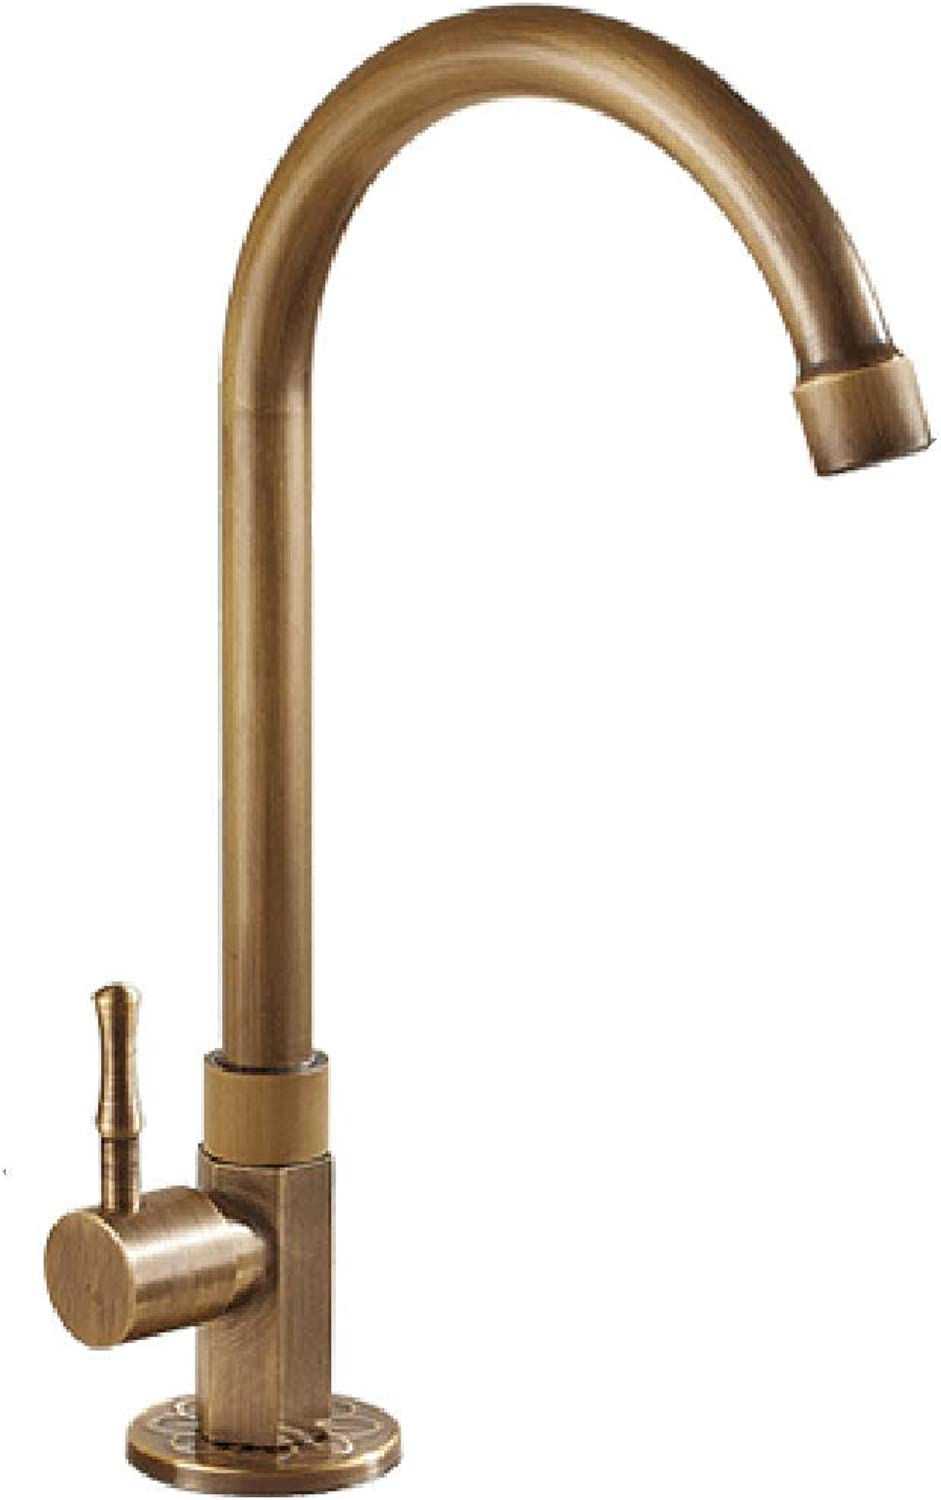 Cool Cold Single Kitchen Hole Single European Antique Ghxj Faucet Download Free Architecture Designs Scobabritishbridgeorg